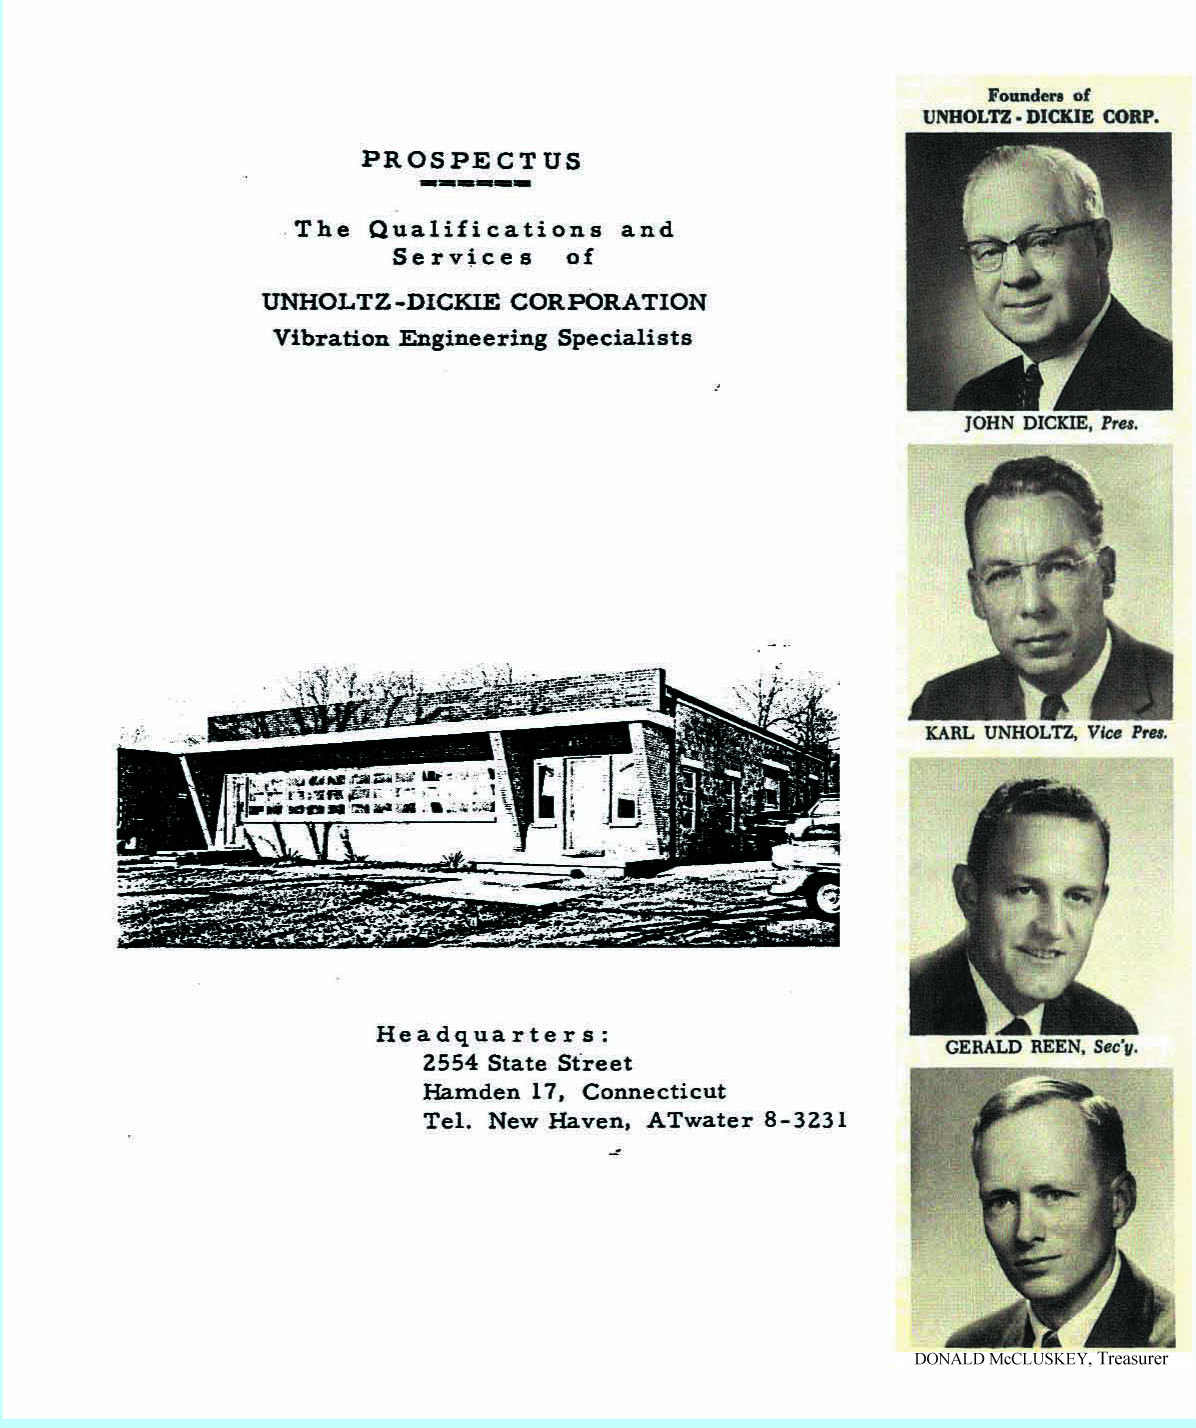 Unholtz-Dickie Corporation in 1940